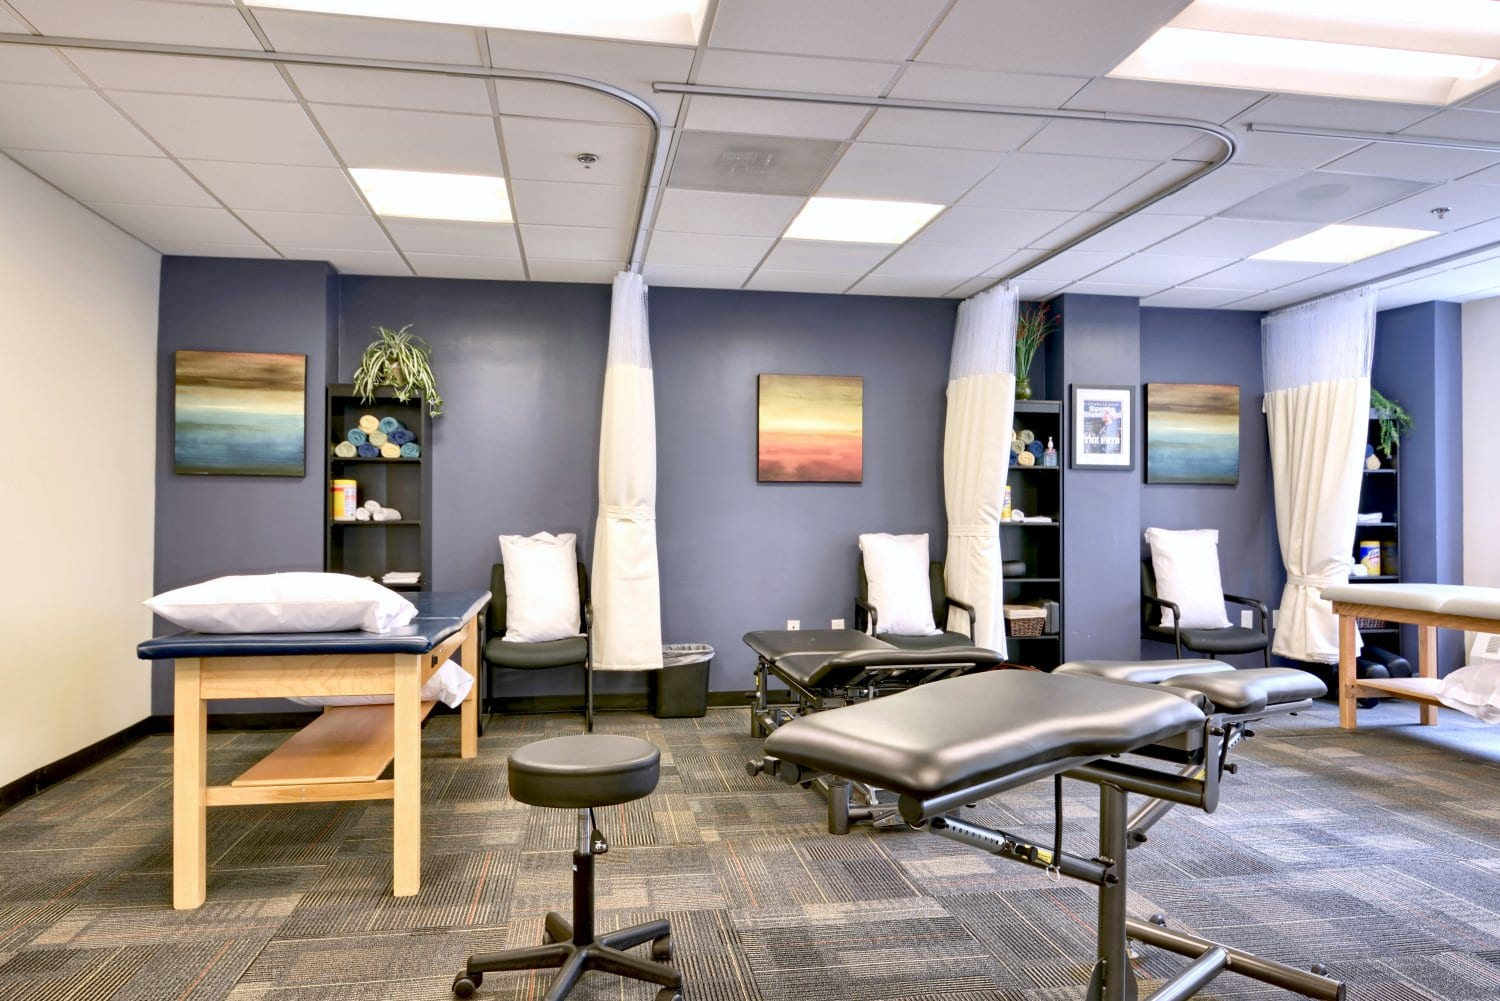 A photo of the interior of our physical therapy clinic in Boston, Massachusetts. This images shows four stretch beds and a purple wall.